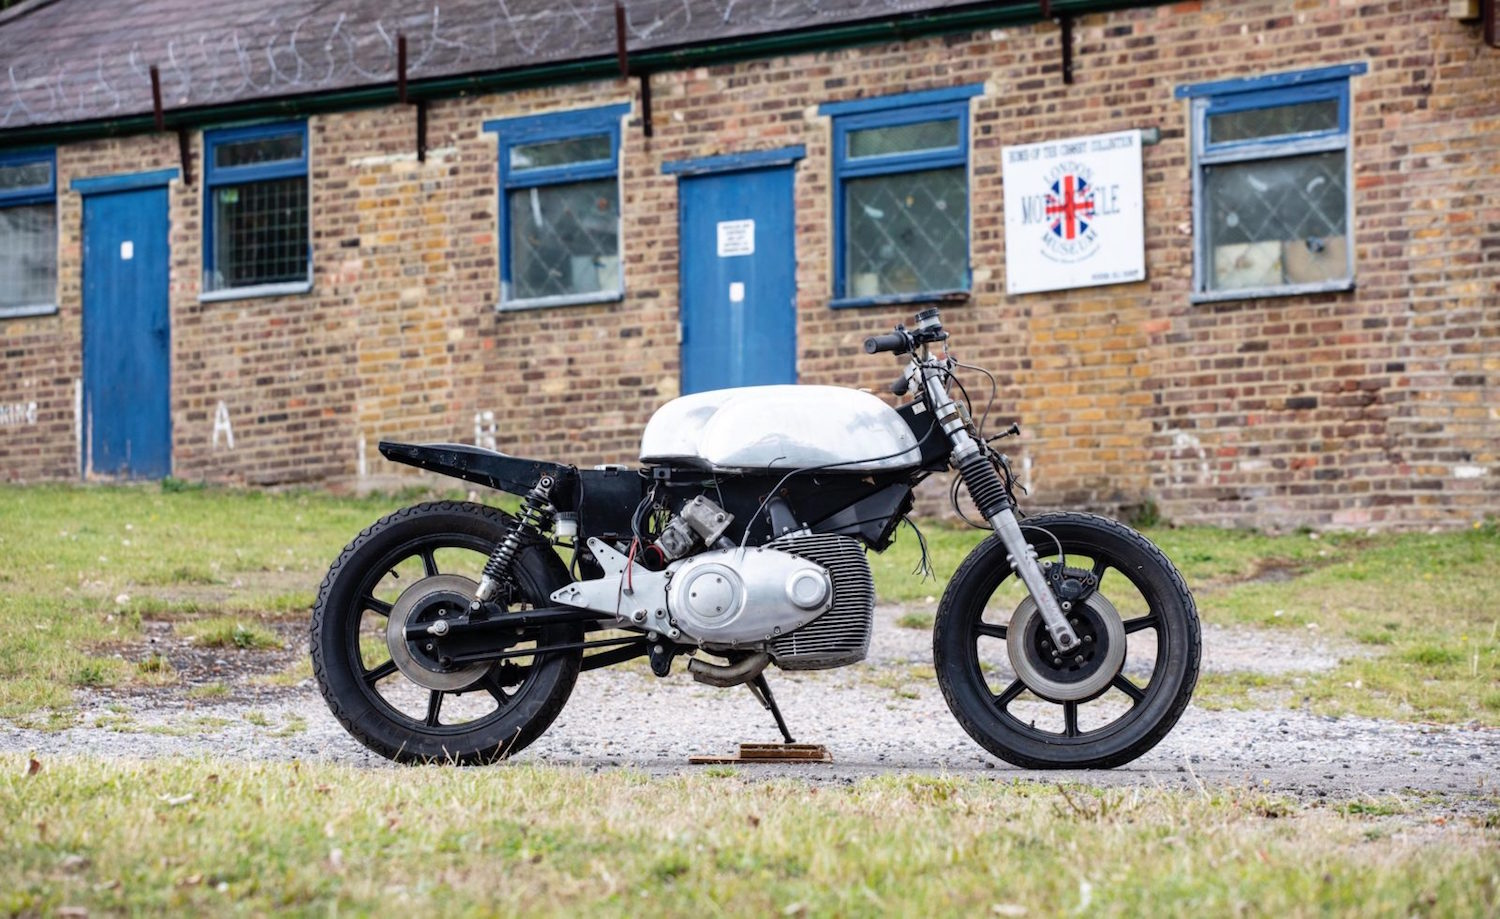 This rotary Norton bike project will spice up your weekend jaunts